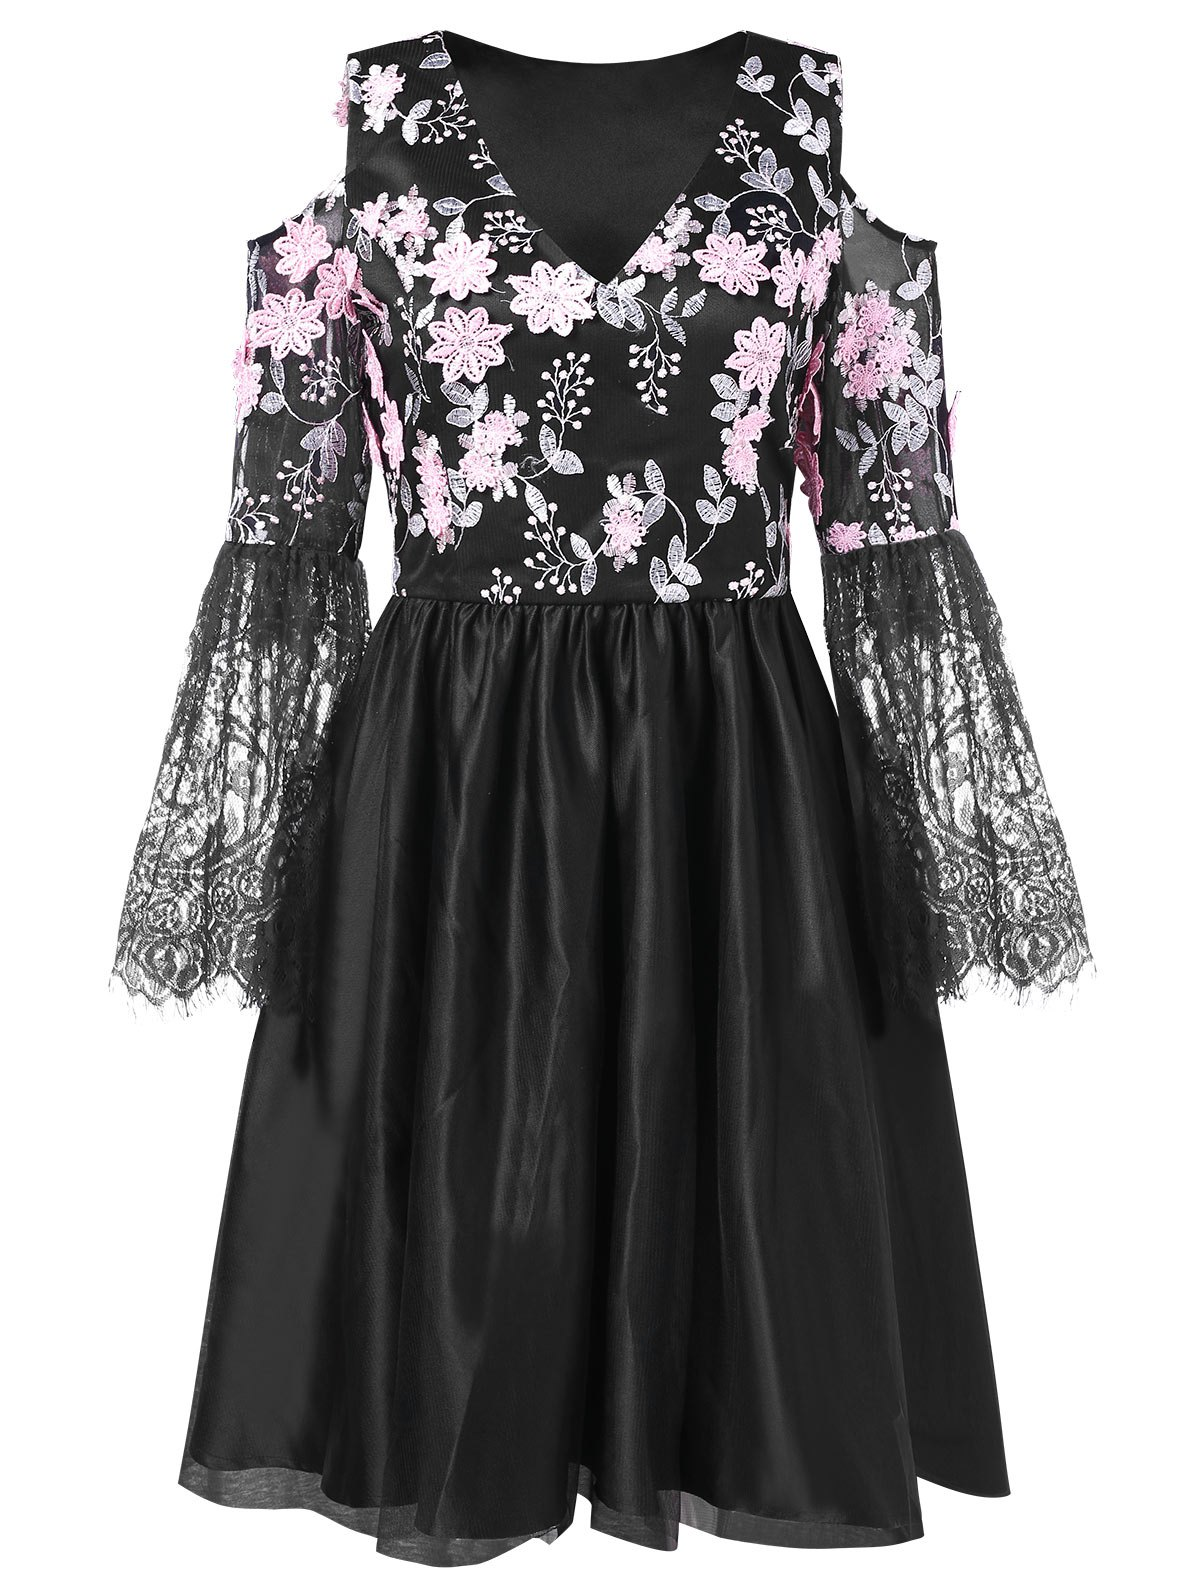 Unique Lace Panel Floral Embroidered Cold Shoulder Dress